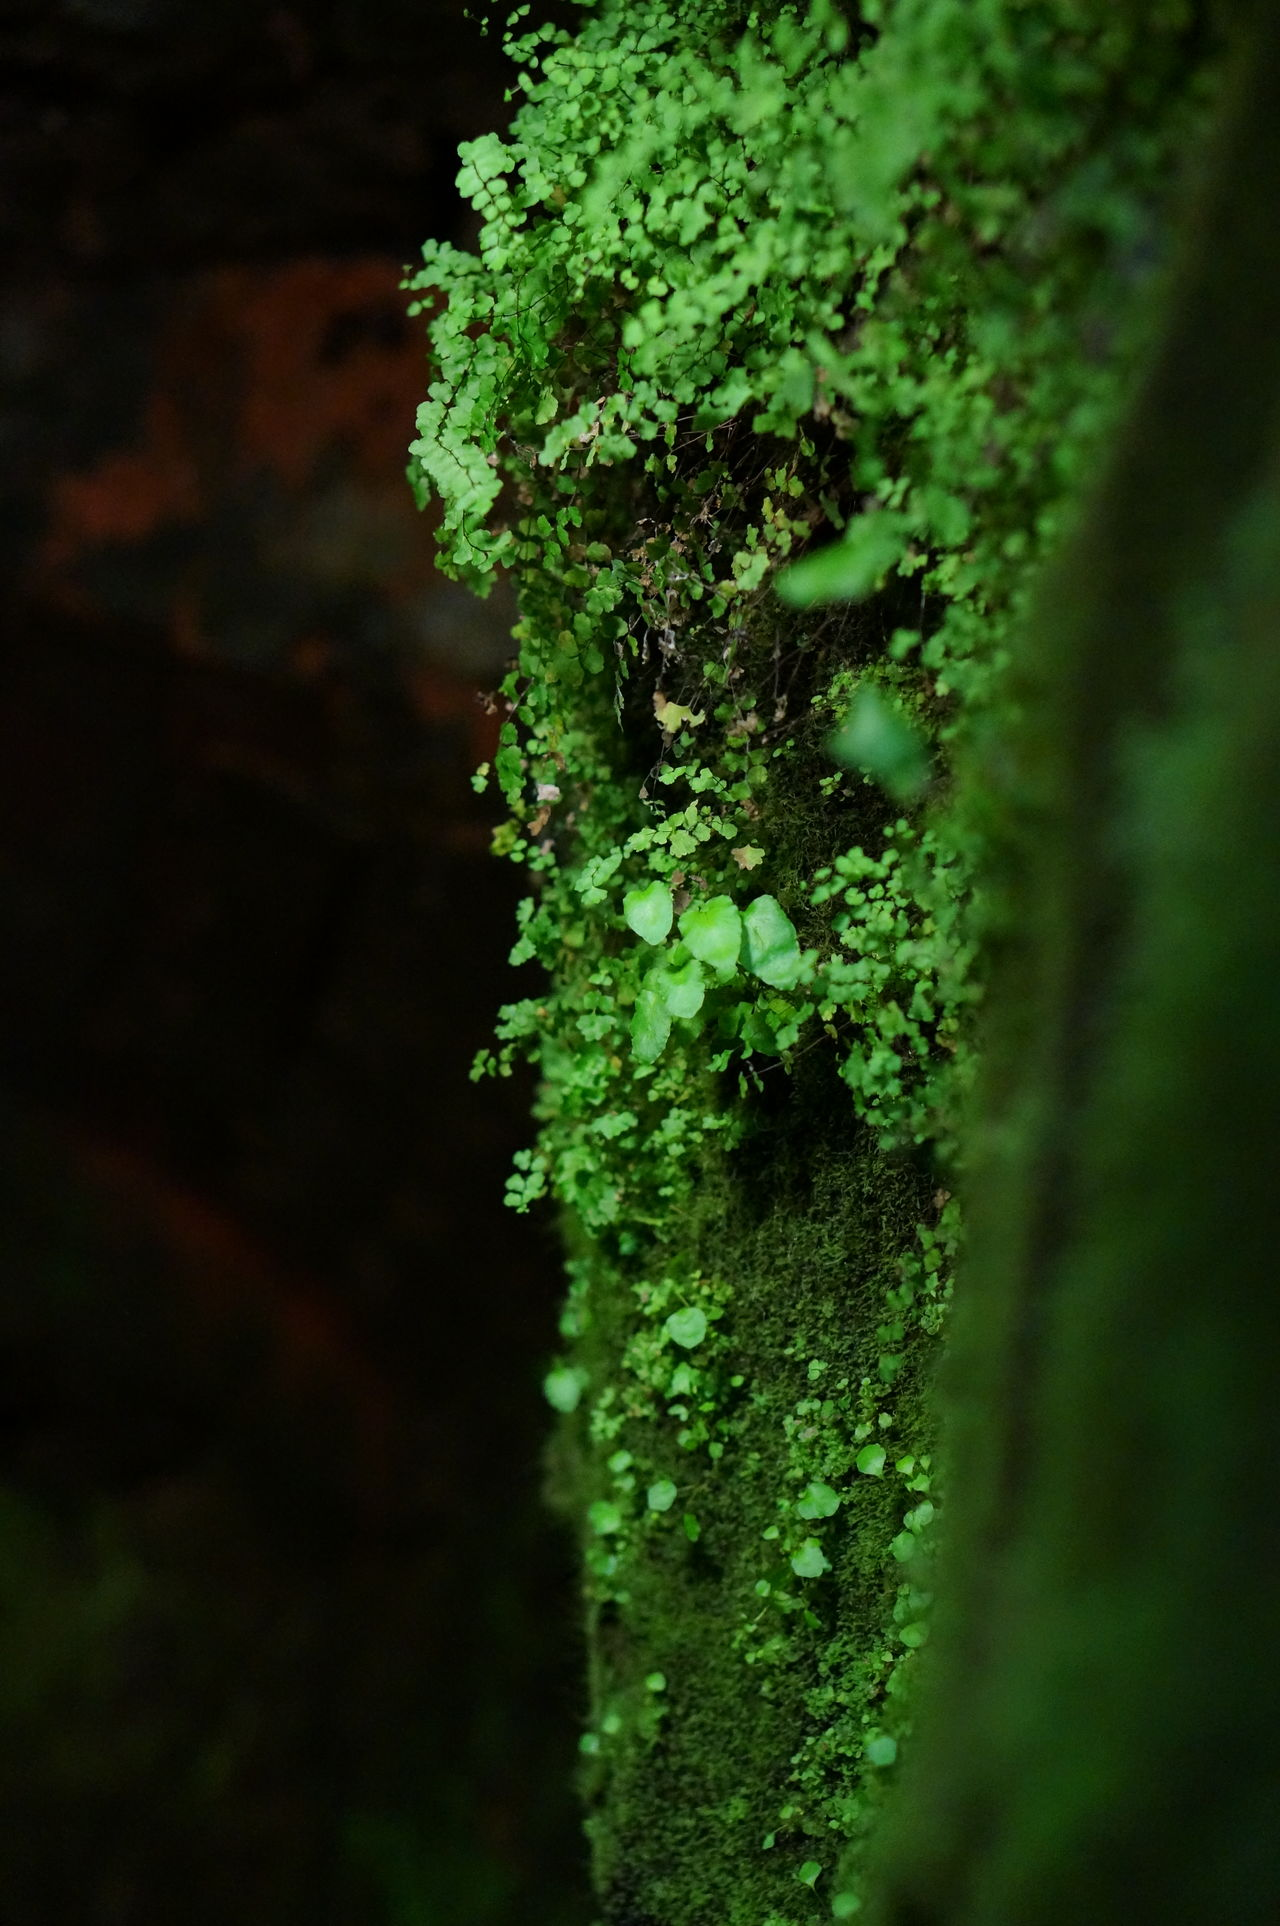 Nature Green Color Growth Beauty In Nature Close-up Grottes Plant Grass